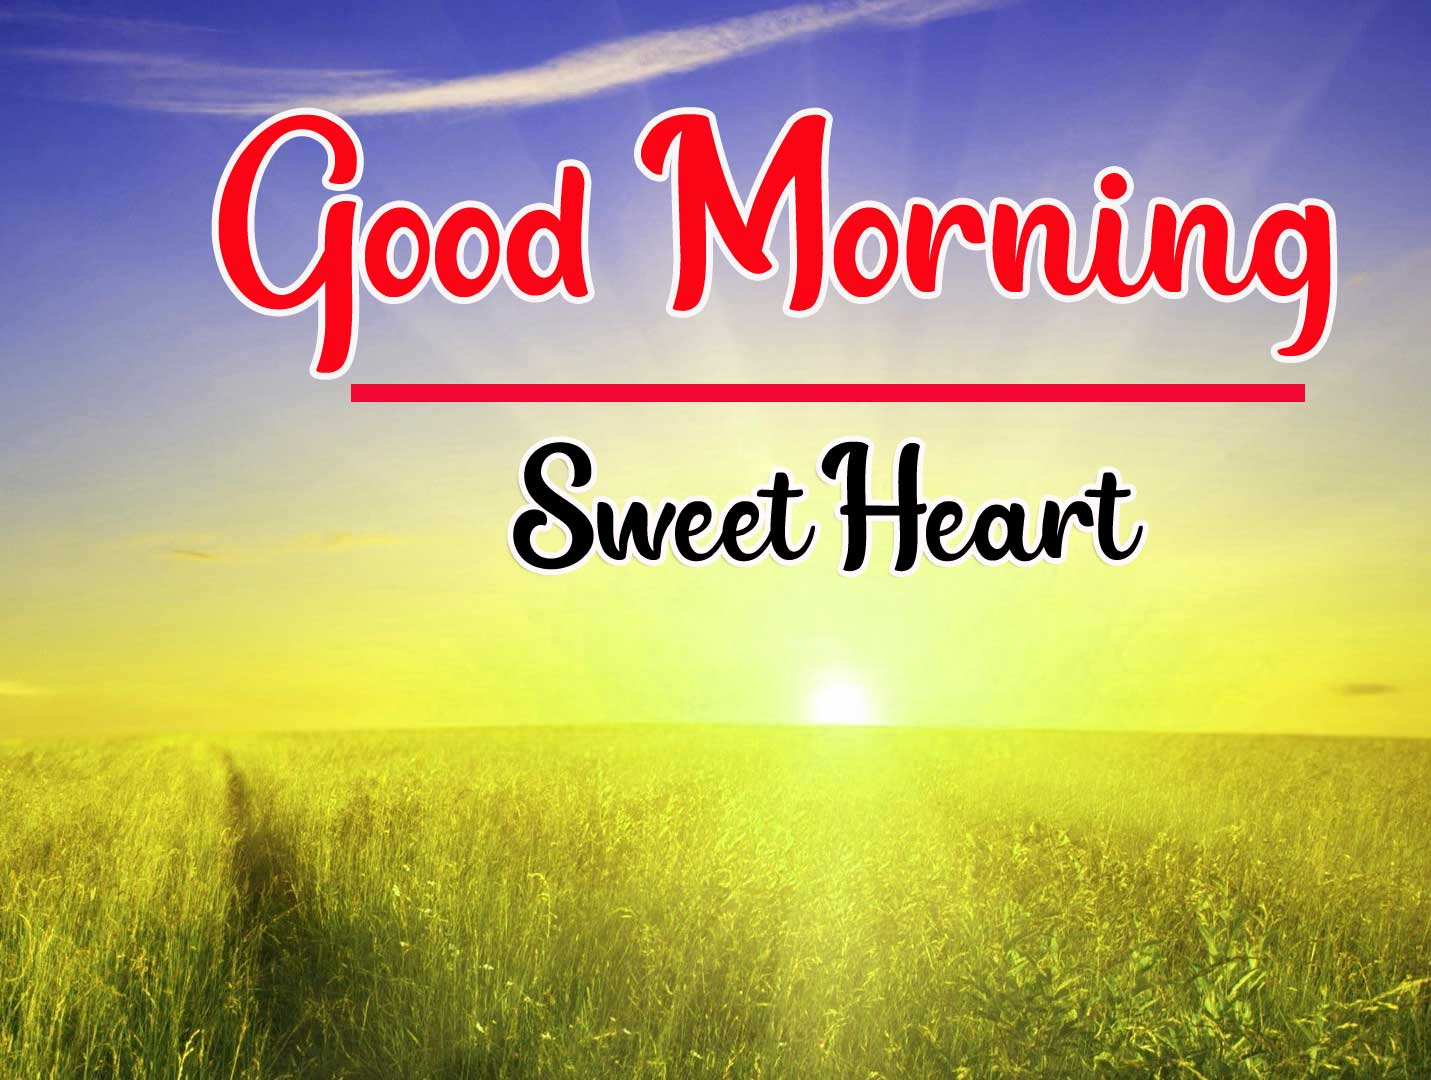 Sunrise Good Morning Photo Download for Wife